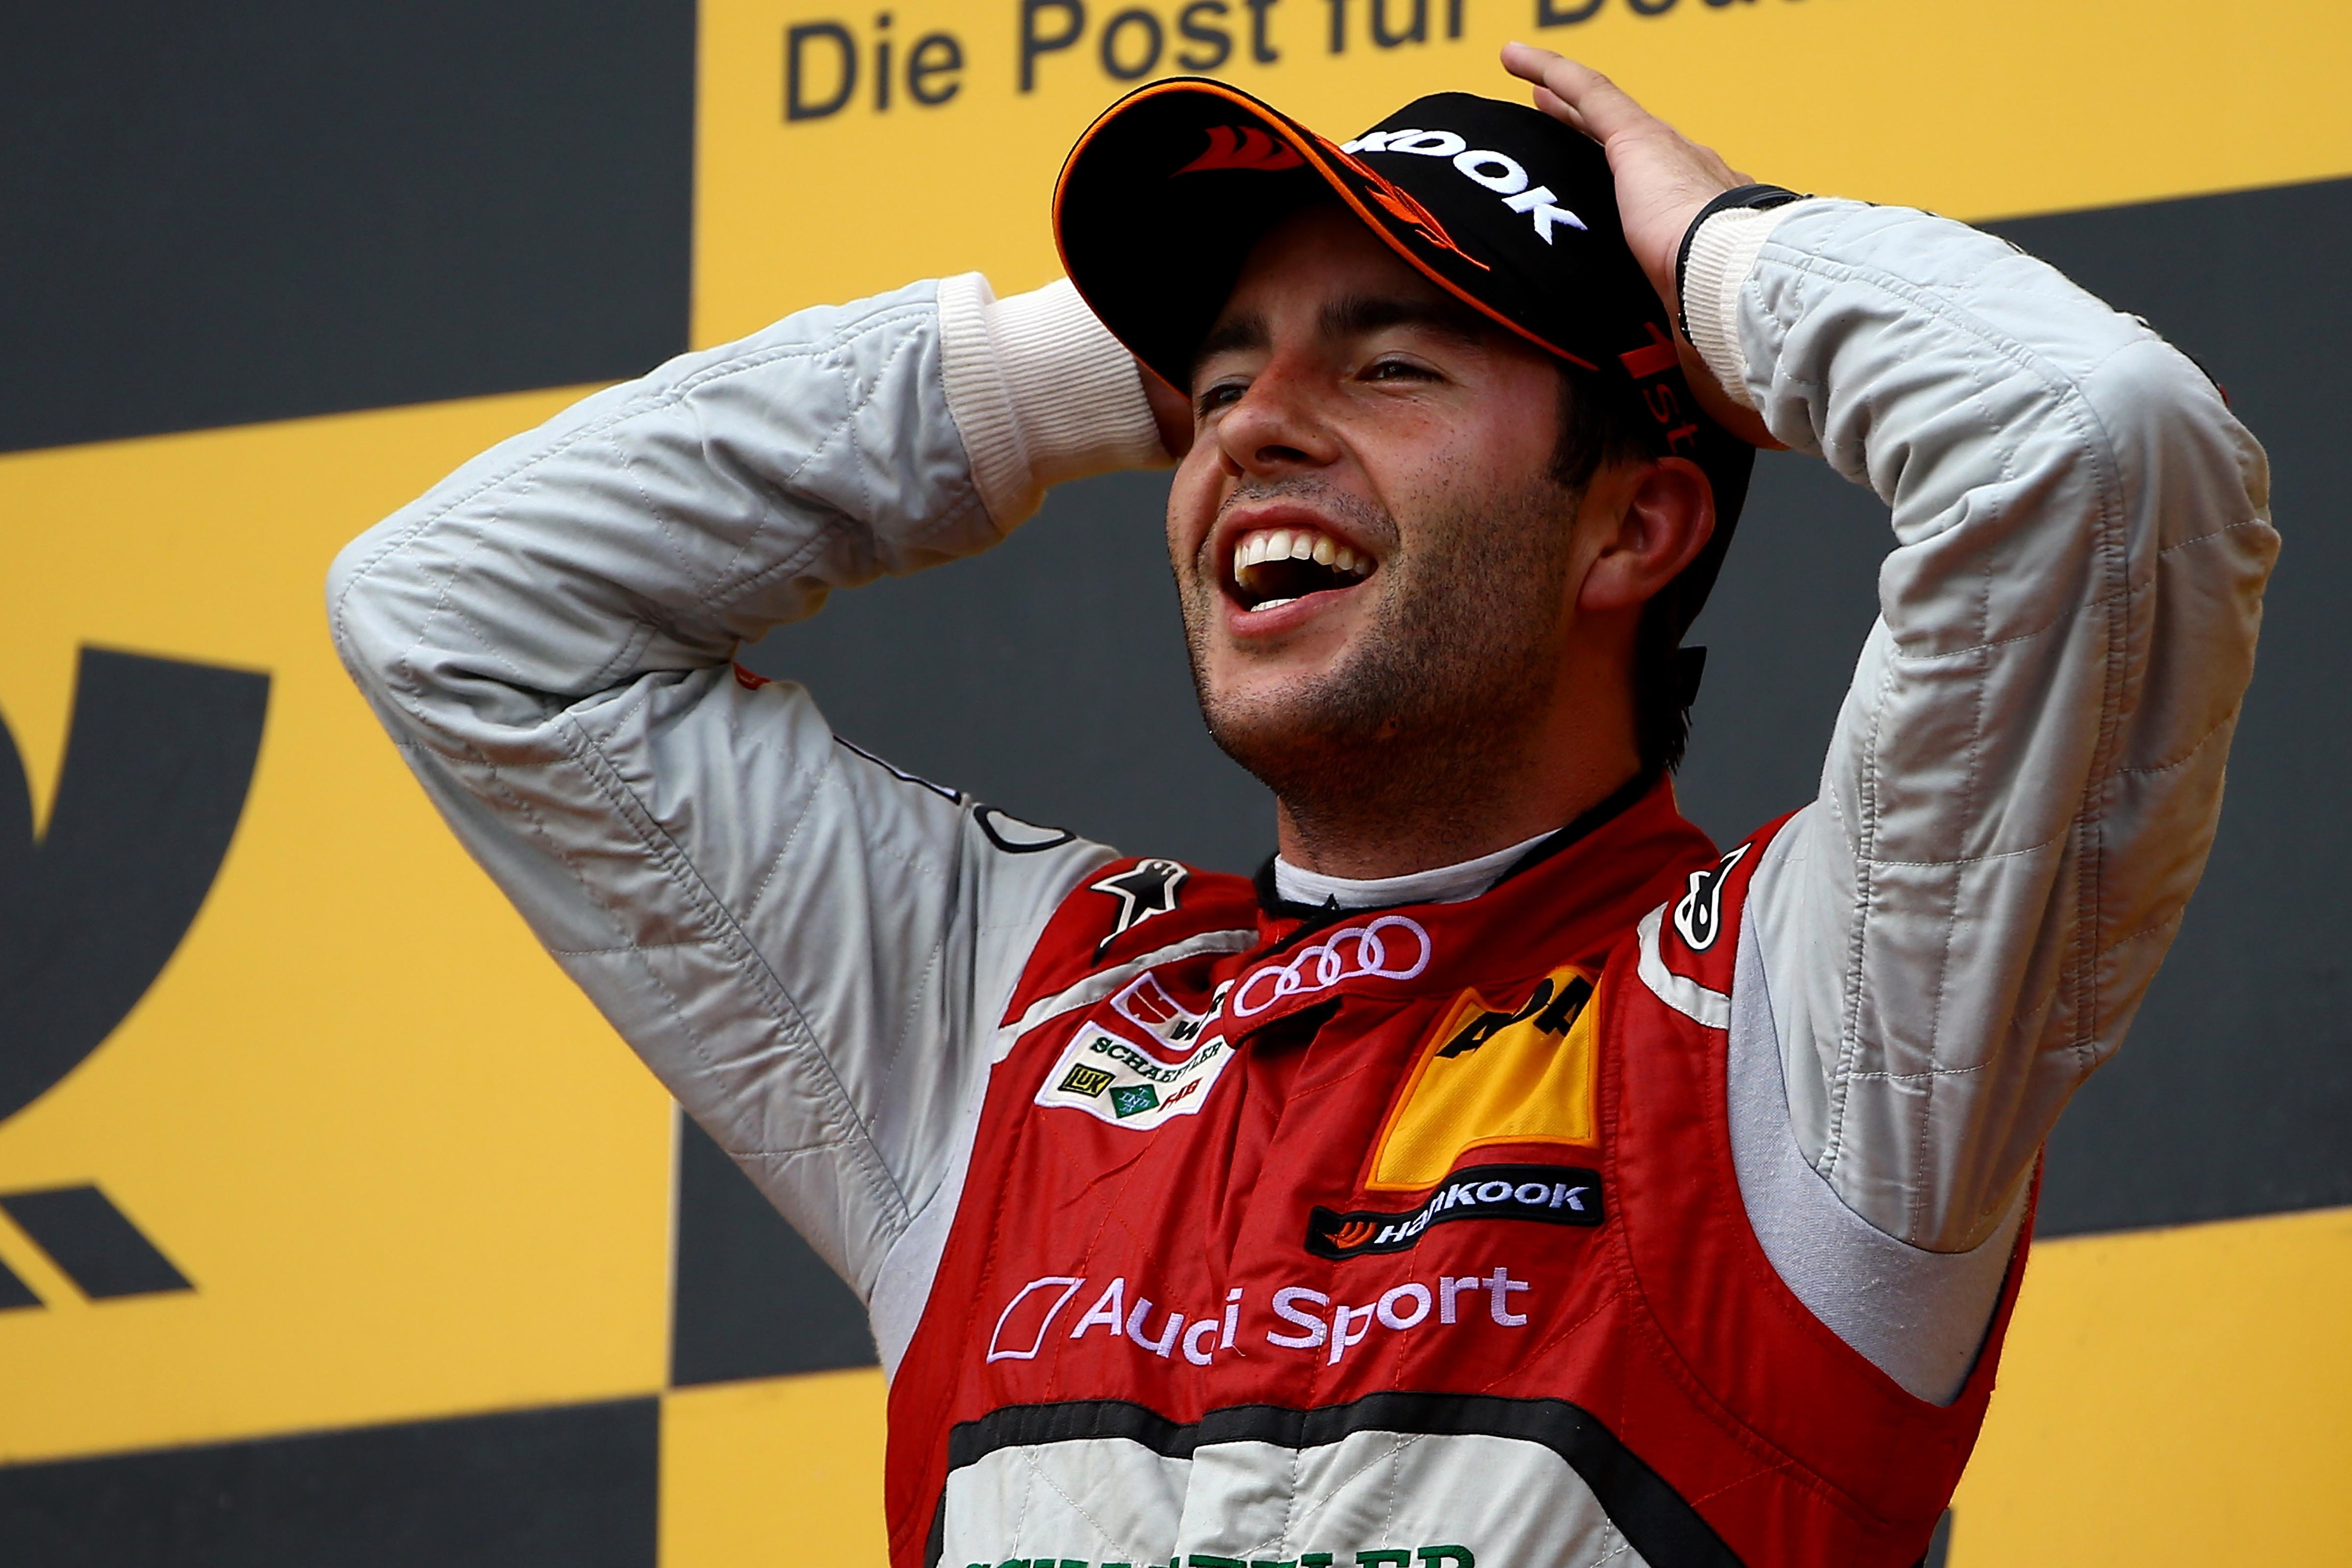 Rockenfeller claimed the 2013 DTM title with Team Phoenix